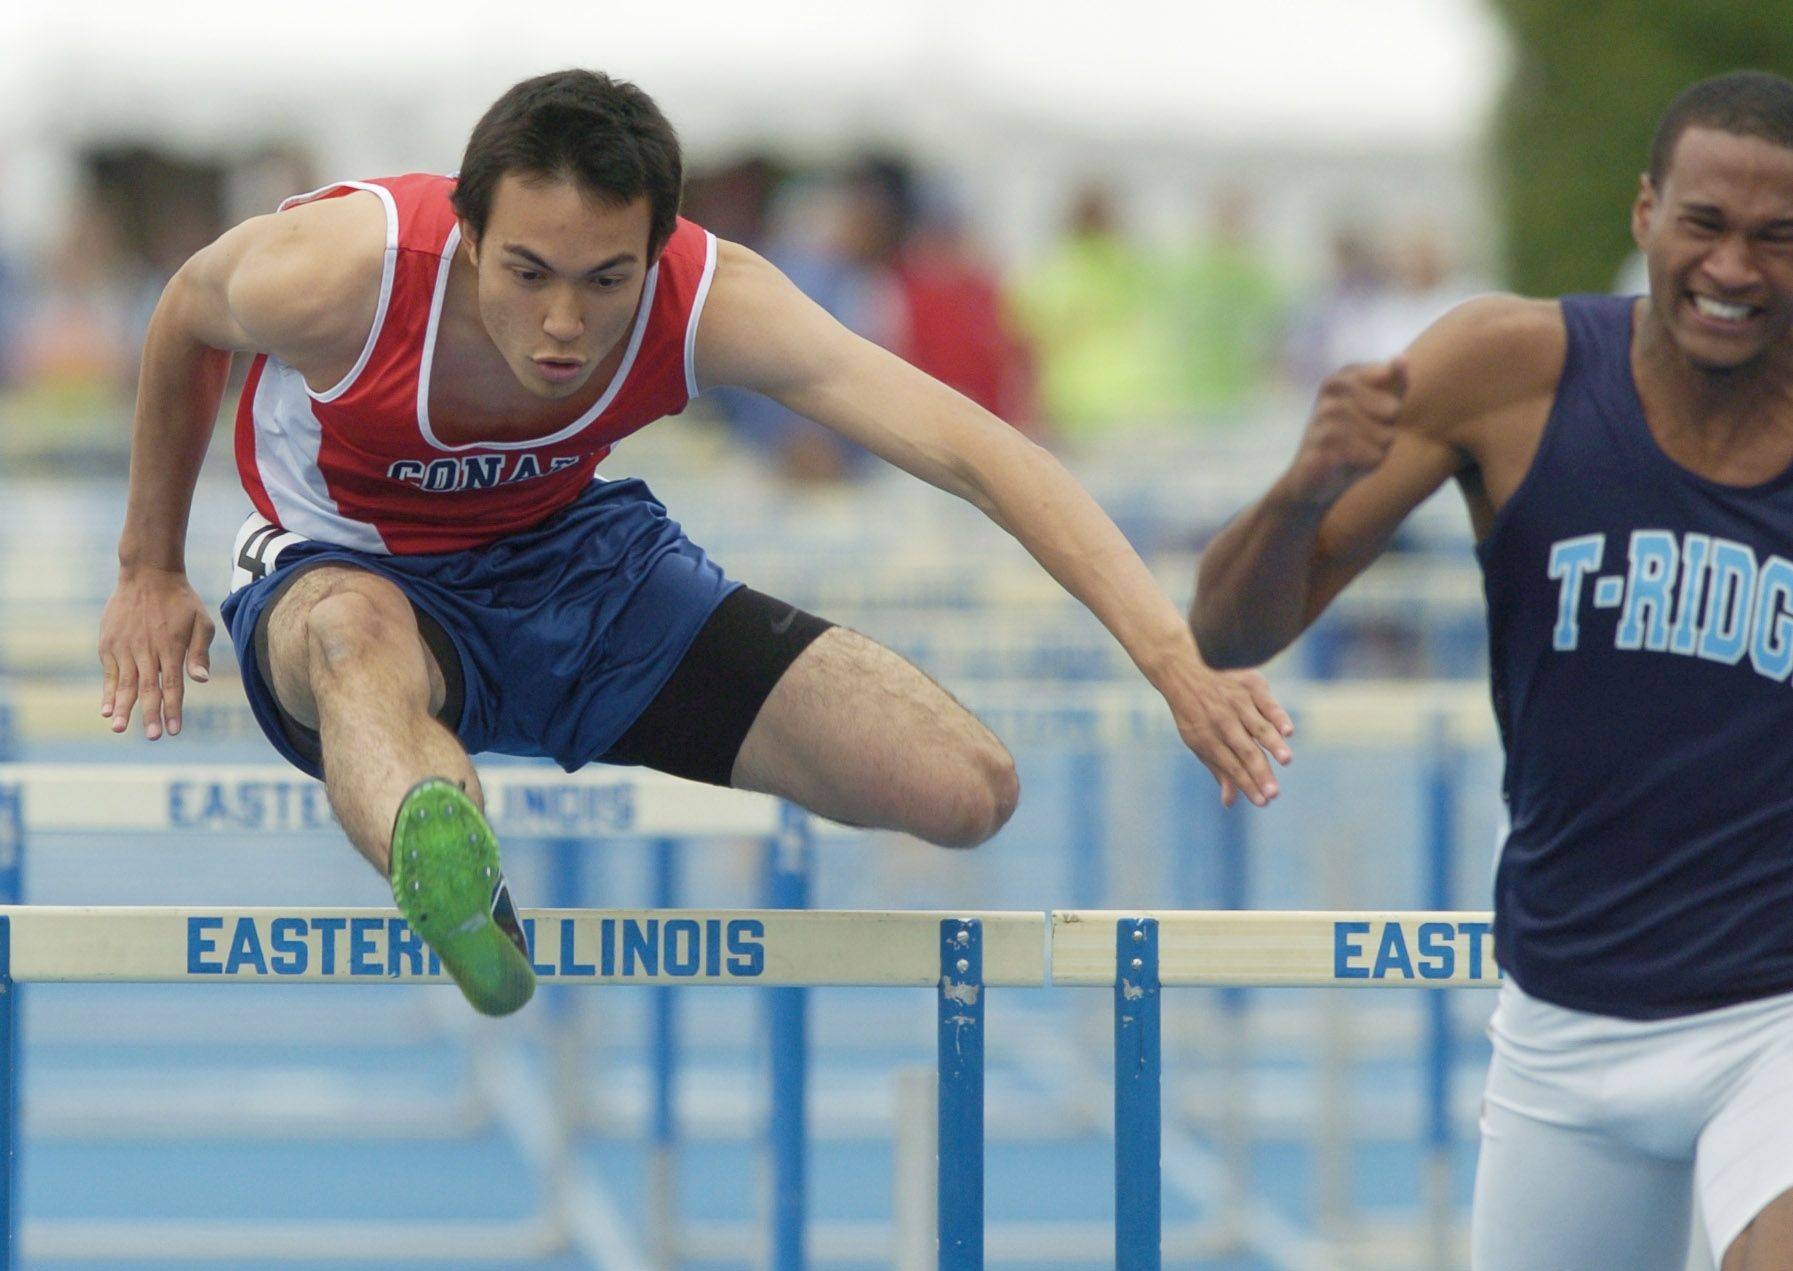 Conant's Ben Bowers competes in the 110-meter high hurdles during the boys state track finals in Charleston Saturday.